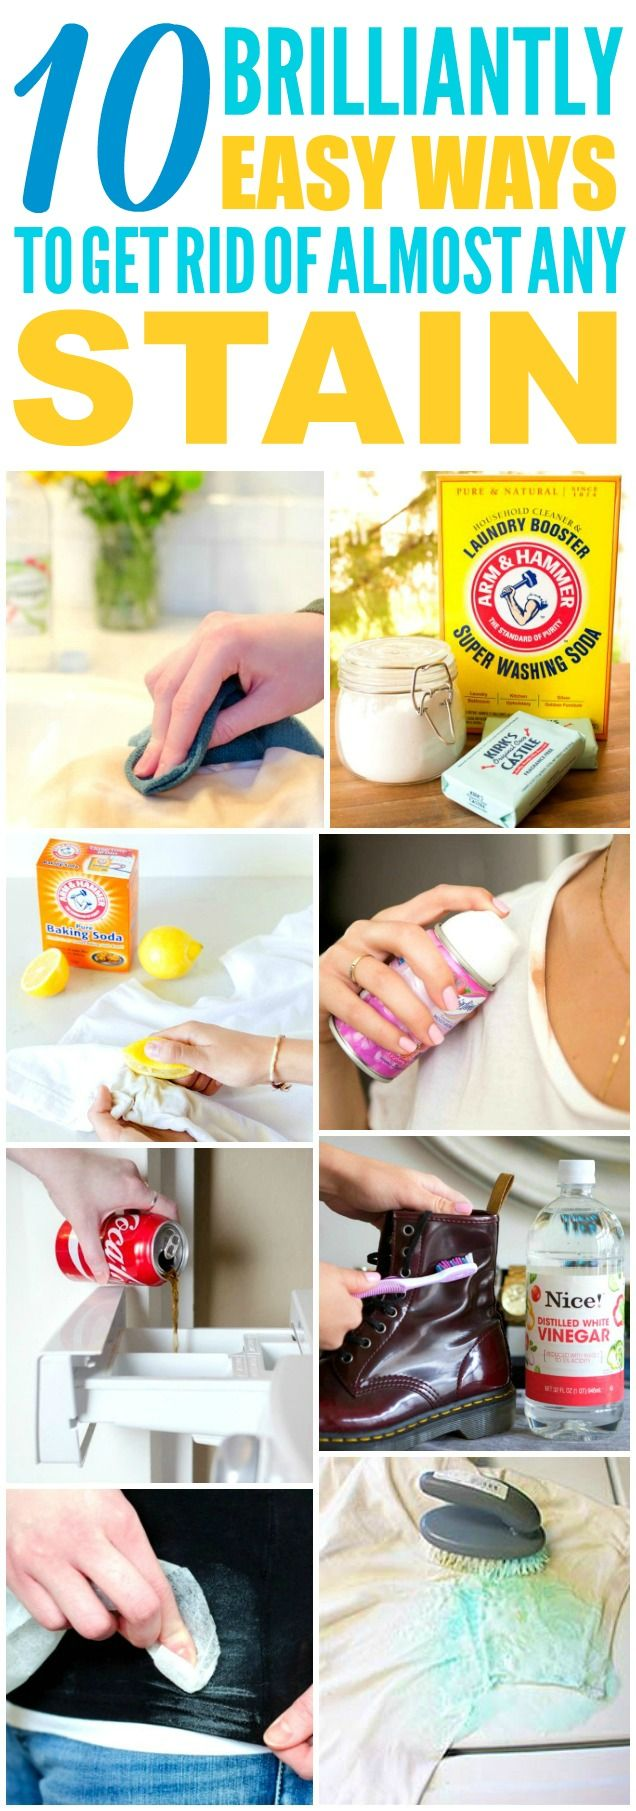 These 10 easy laundry hacks are THE BEST! I'm so glad I found these AMAZING tips! Now I have some great ways to get rid of stains! Definitely pinning!